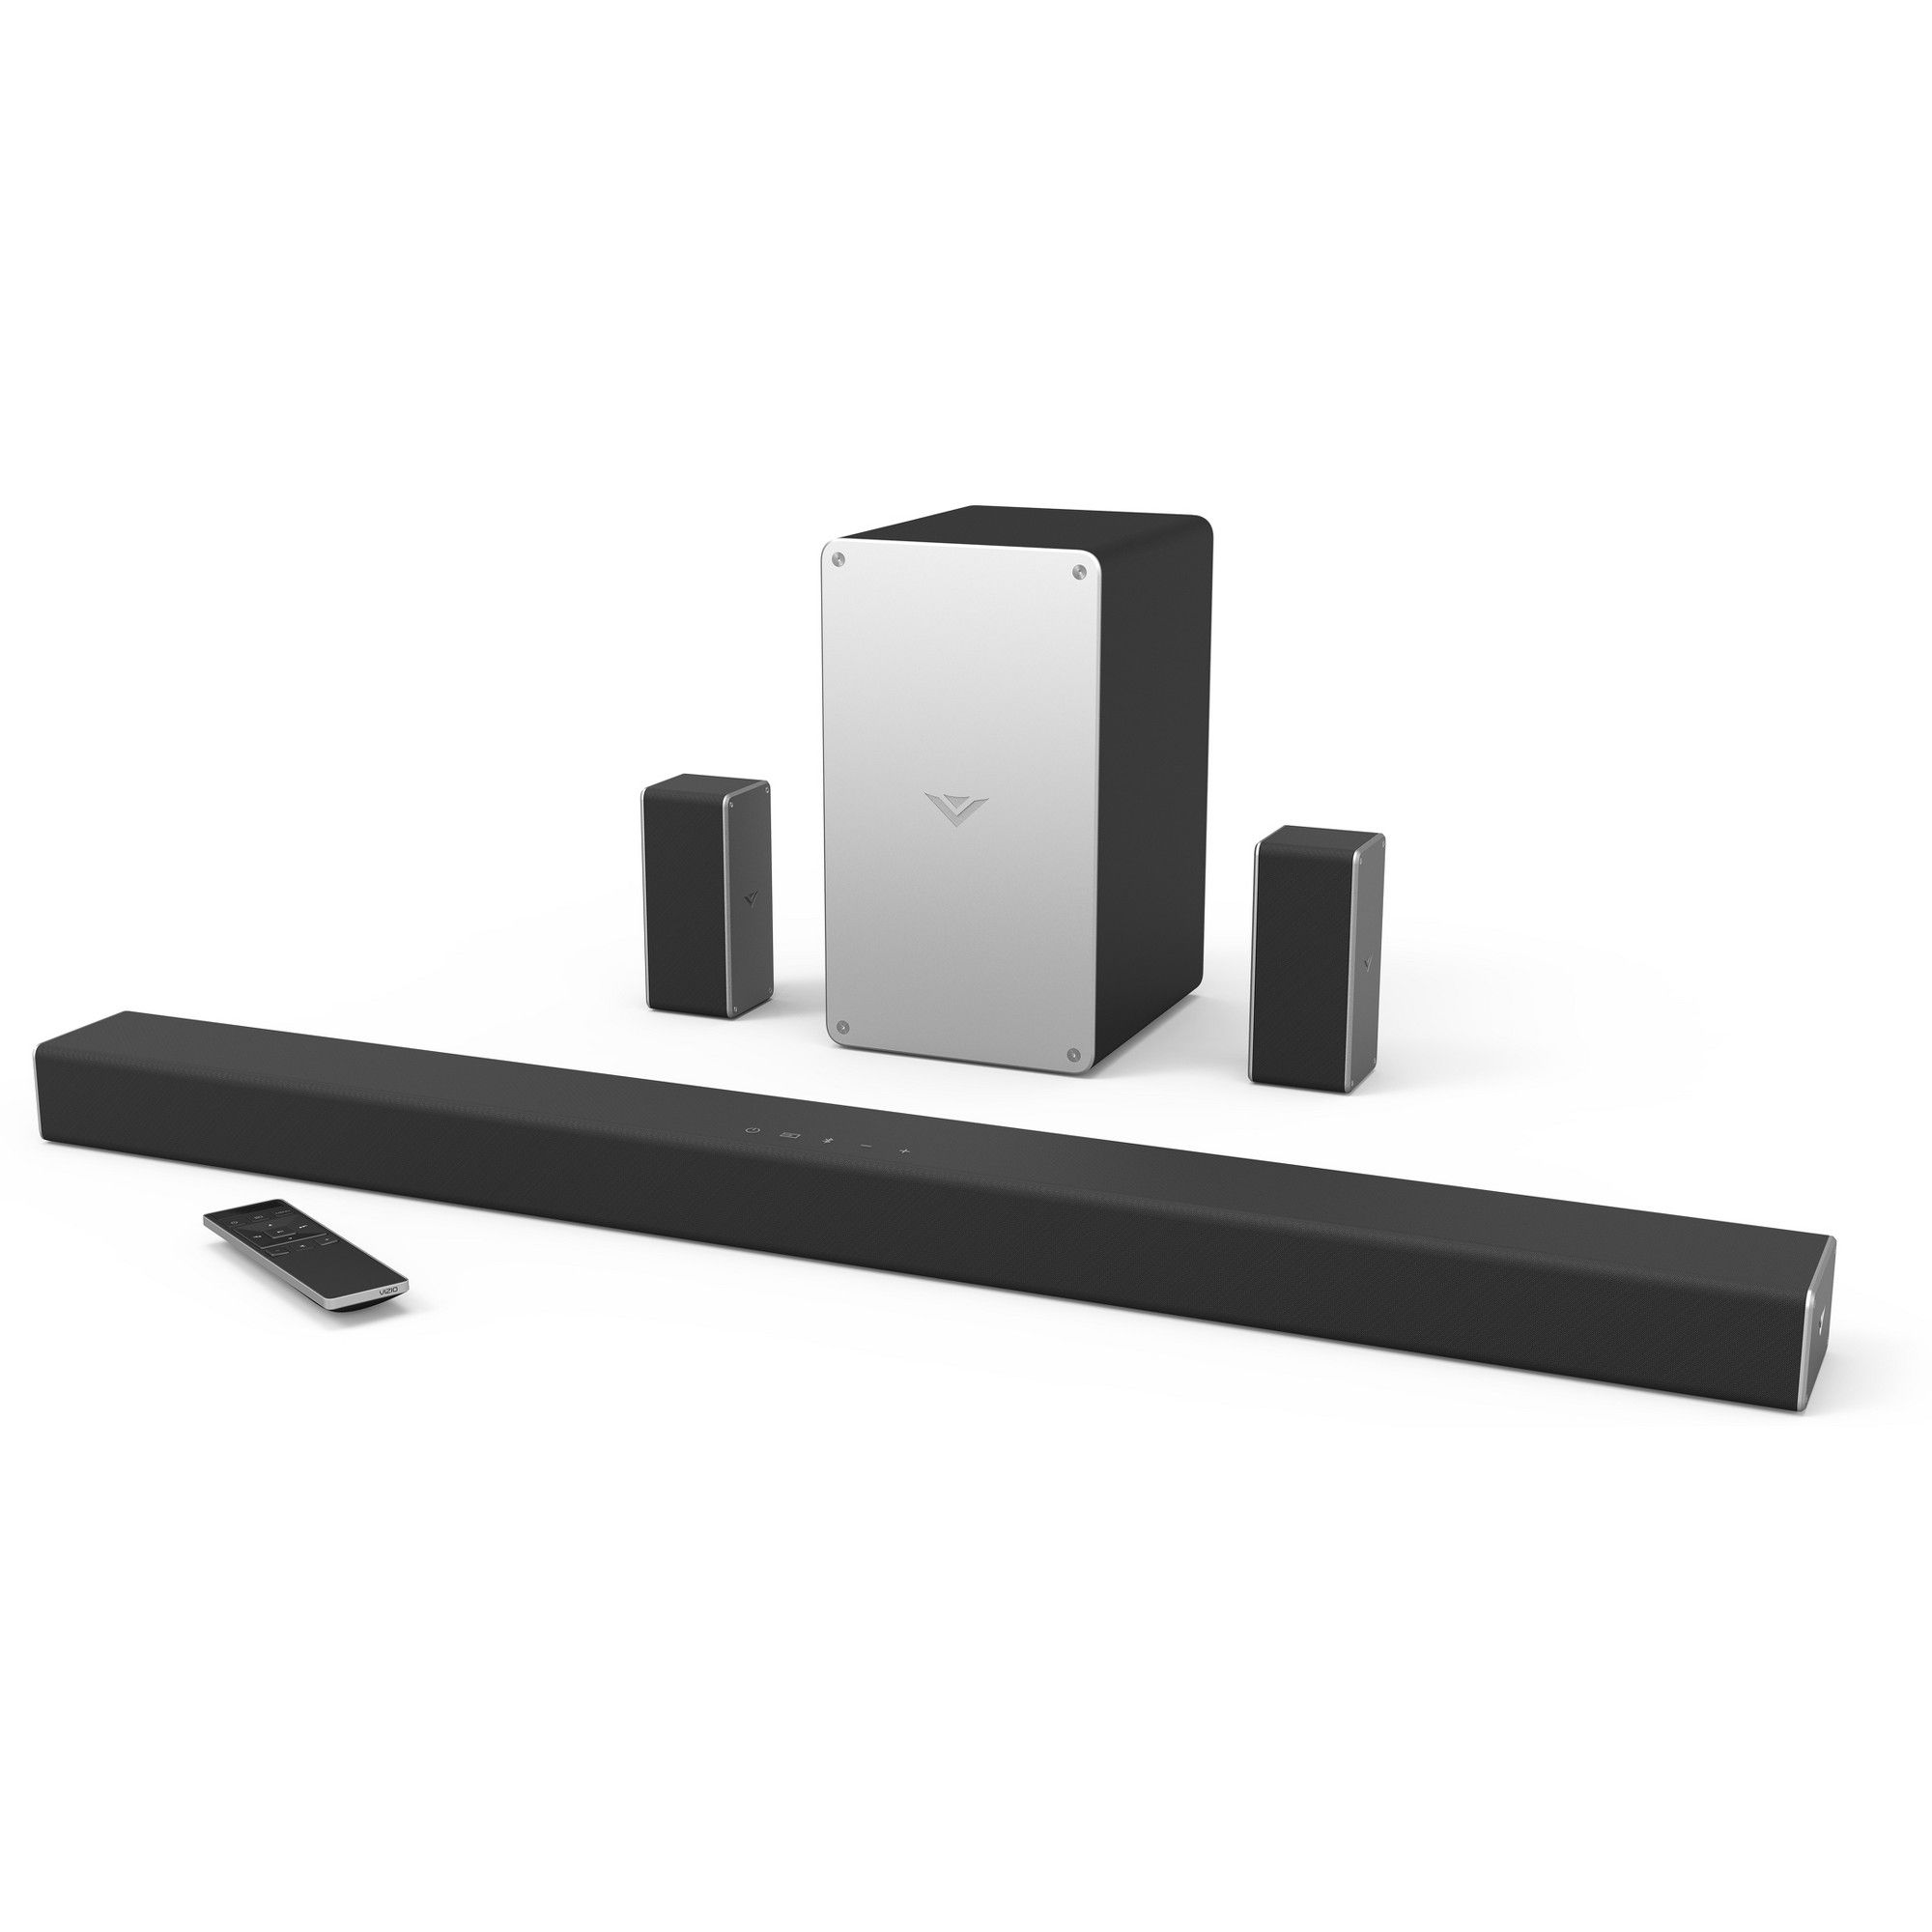 "VIZIO 36"" 5.1 Sound Bar System Black (SB3651E6"